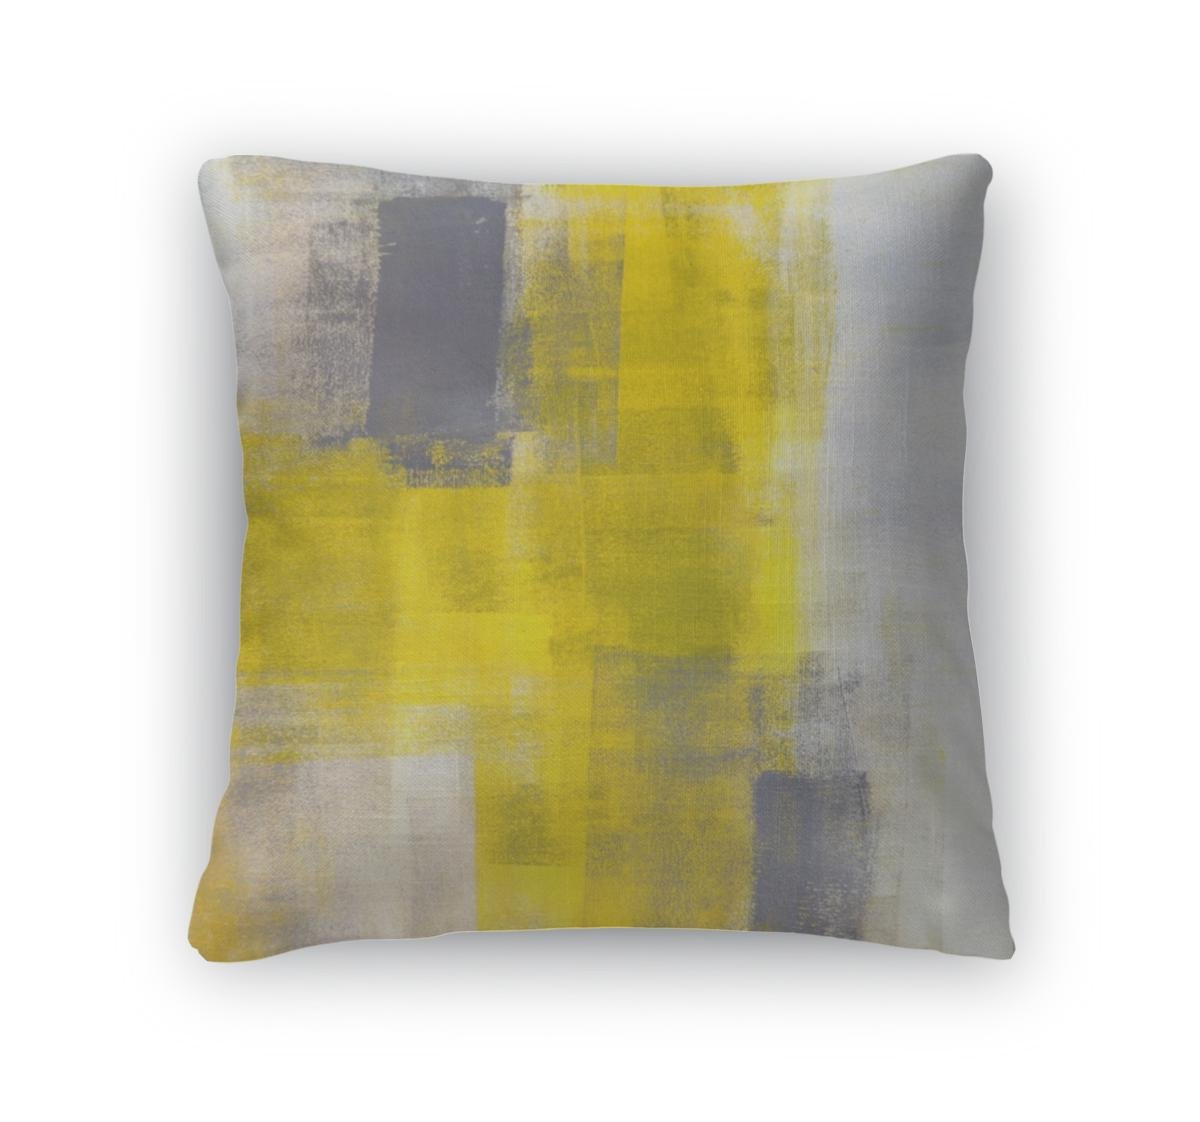 Gear New Grey And Yellow Abstract Painting Decorative Accent Throw Pillows for Couch, 16x16